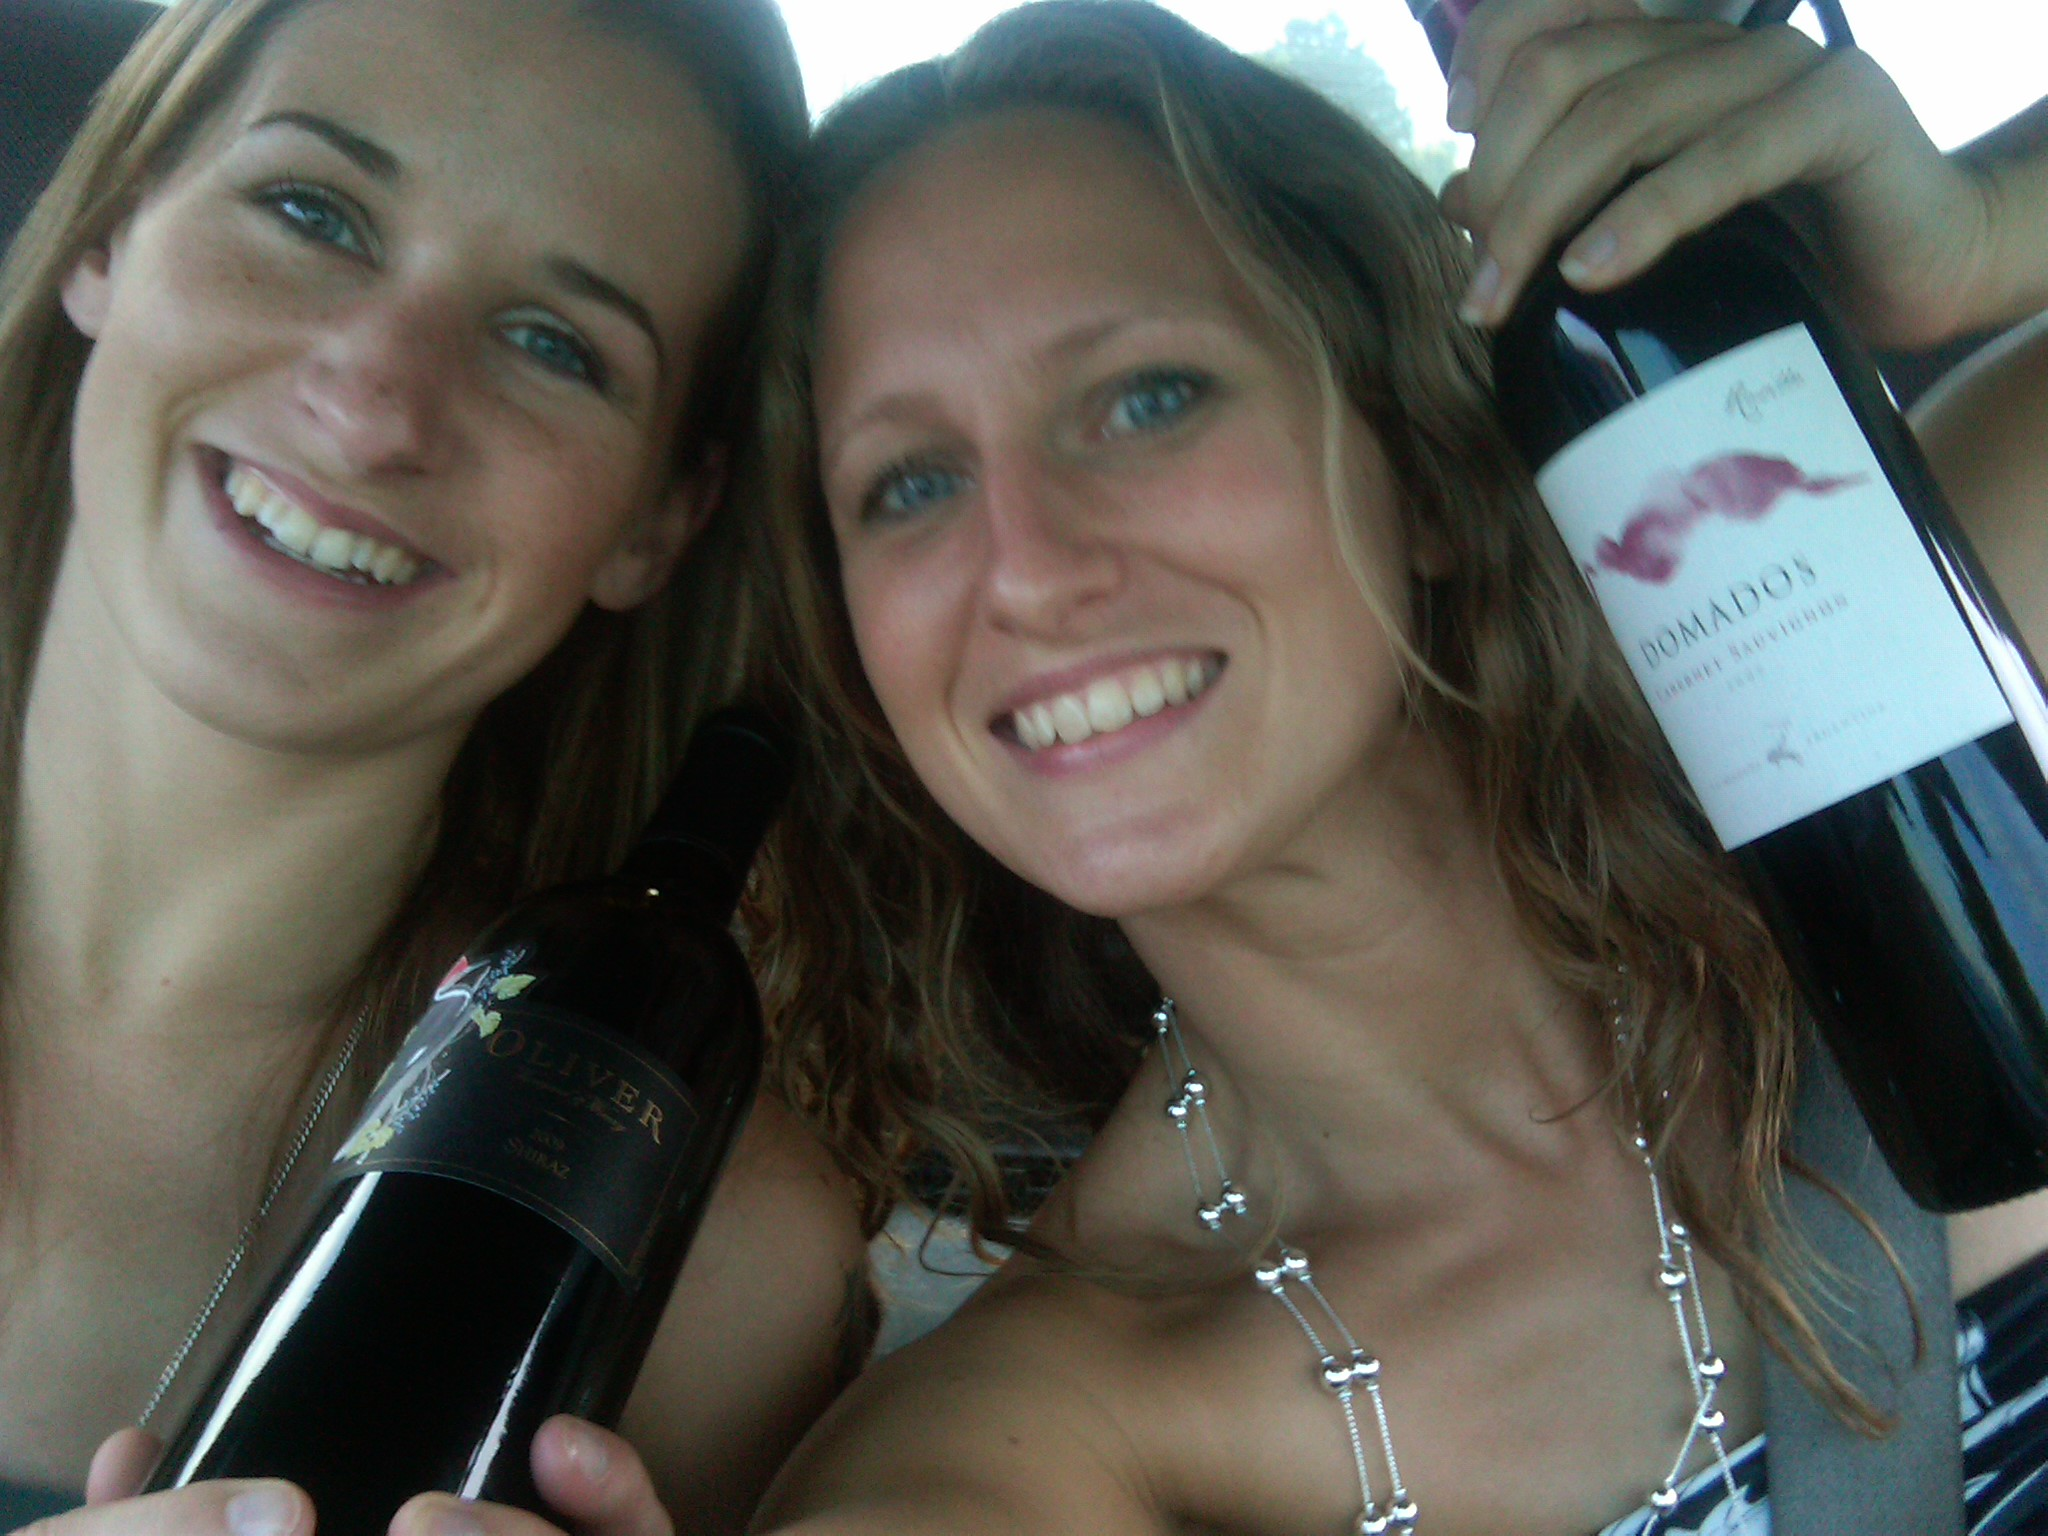 Yay for wine!